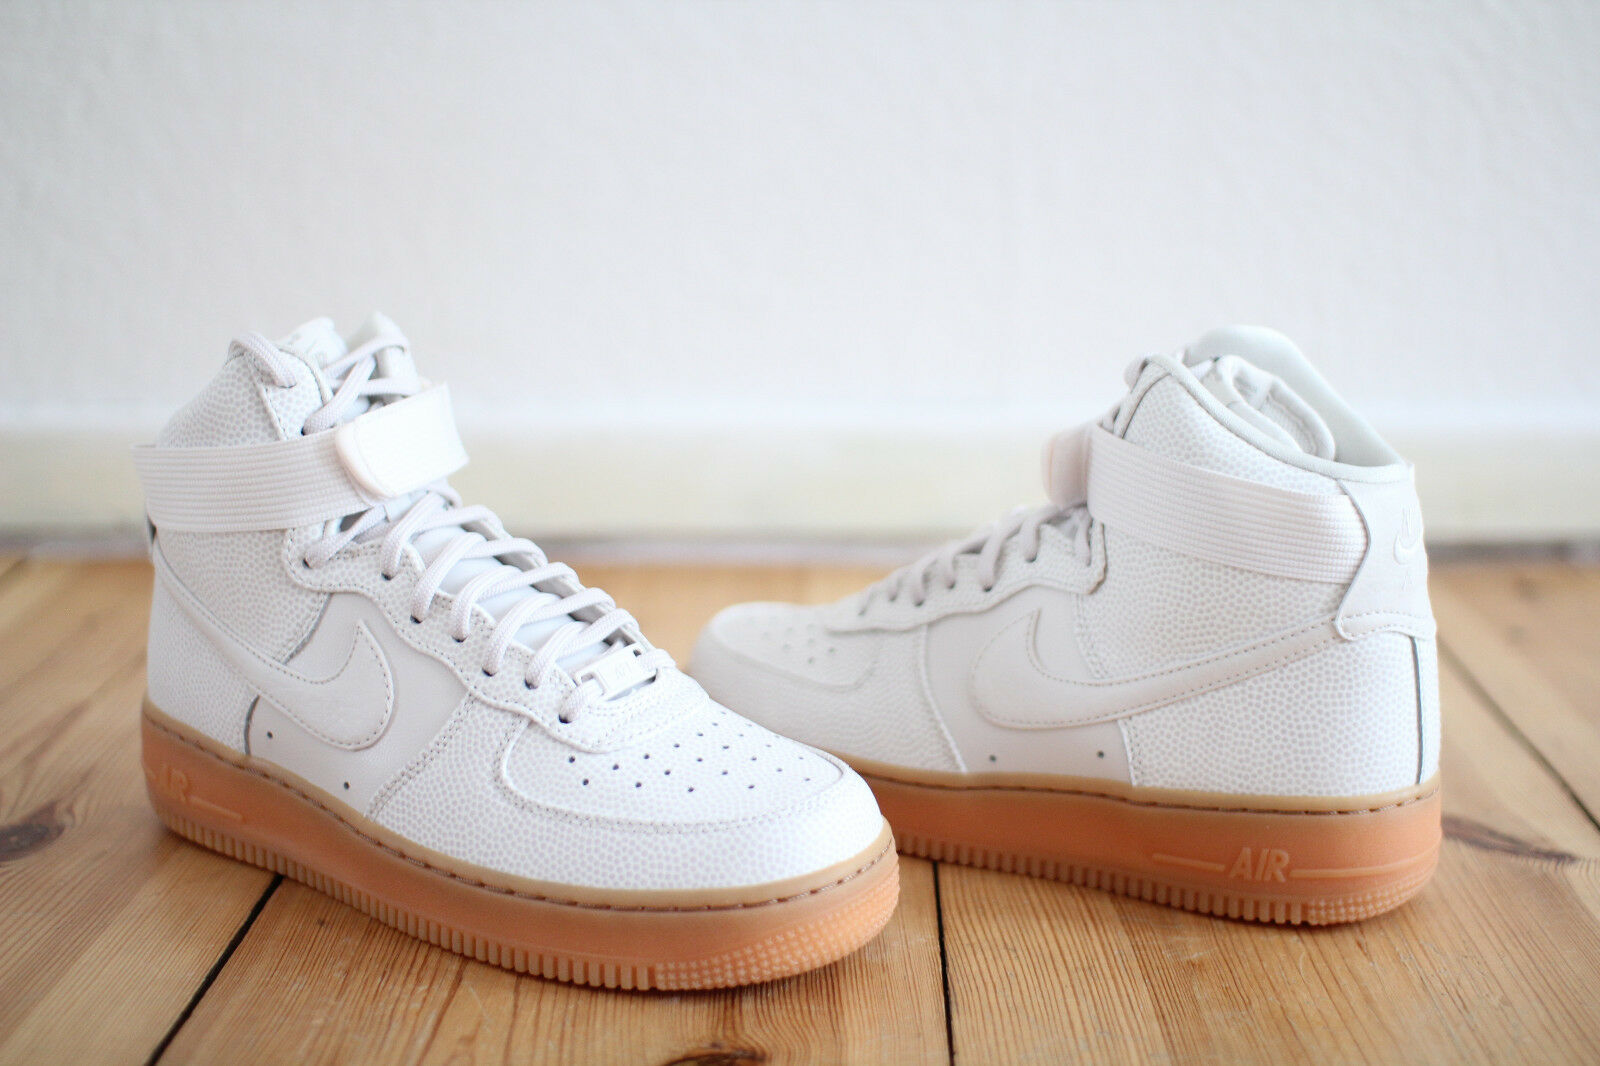 Nike Air Force 1 Hi SE white Leder WMNS Gr. 37,38,39,40 NEU & OVP